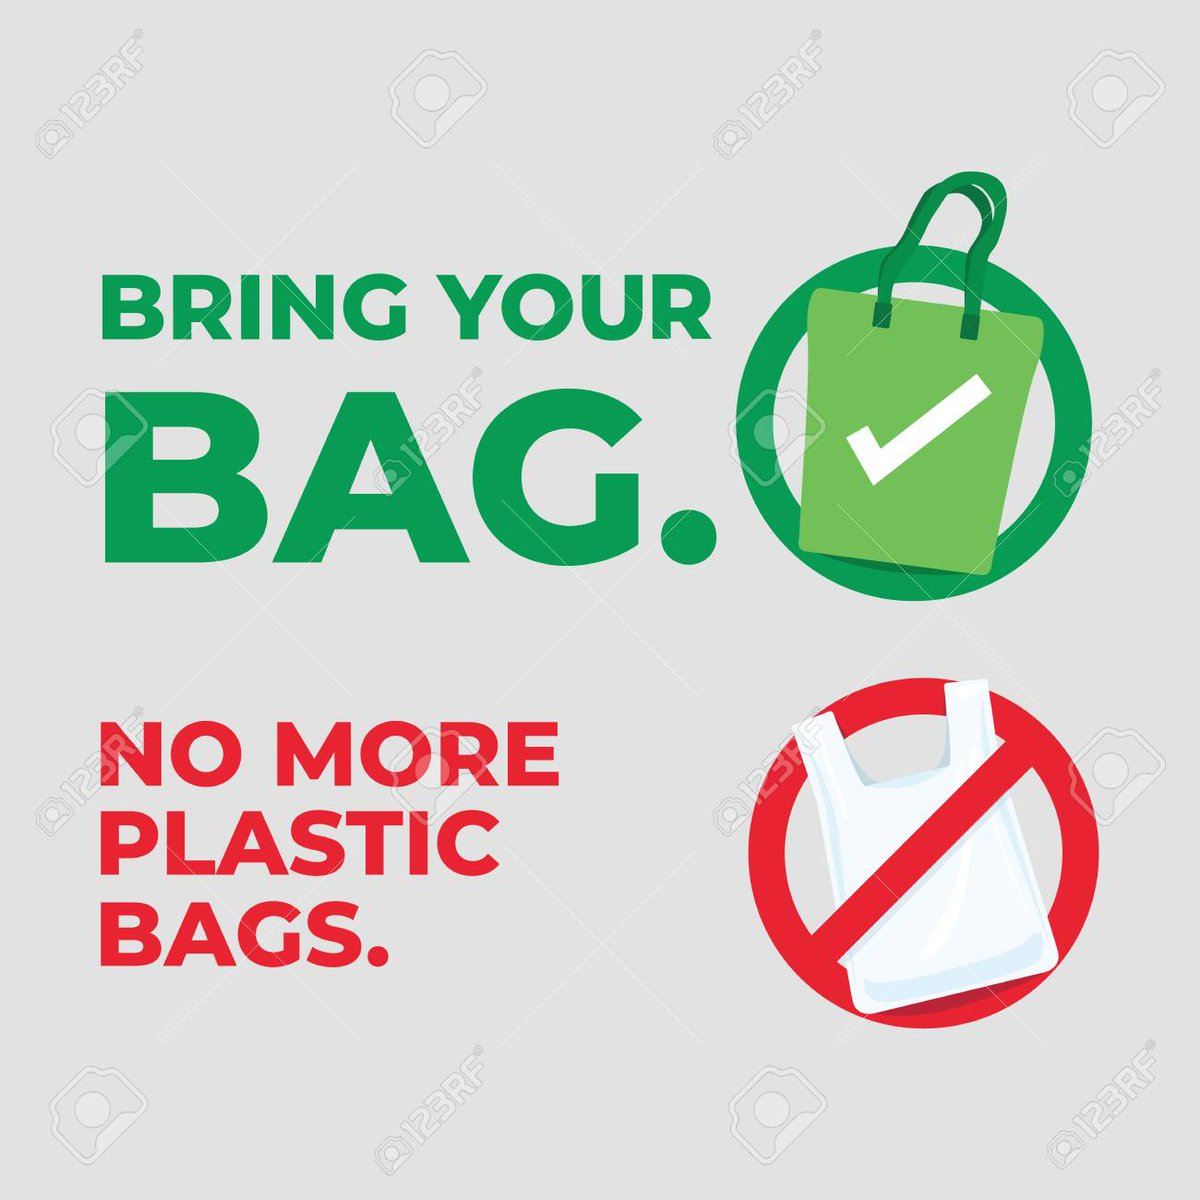 I Love That Most #GroceryStores Around Me; No Longer have #PlasticBags!!! #NoMorePlasticBags